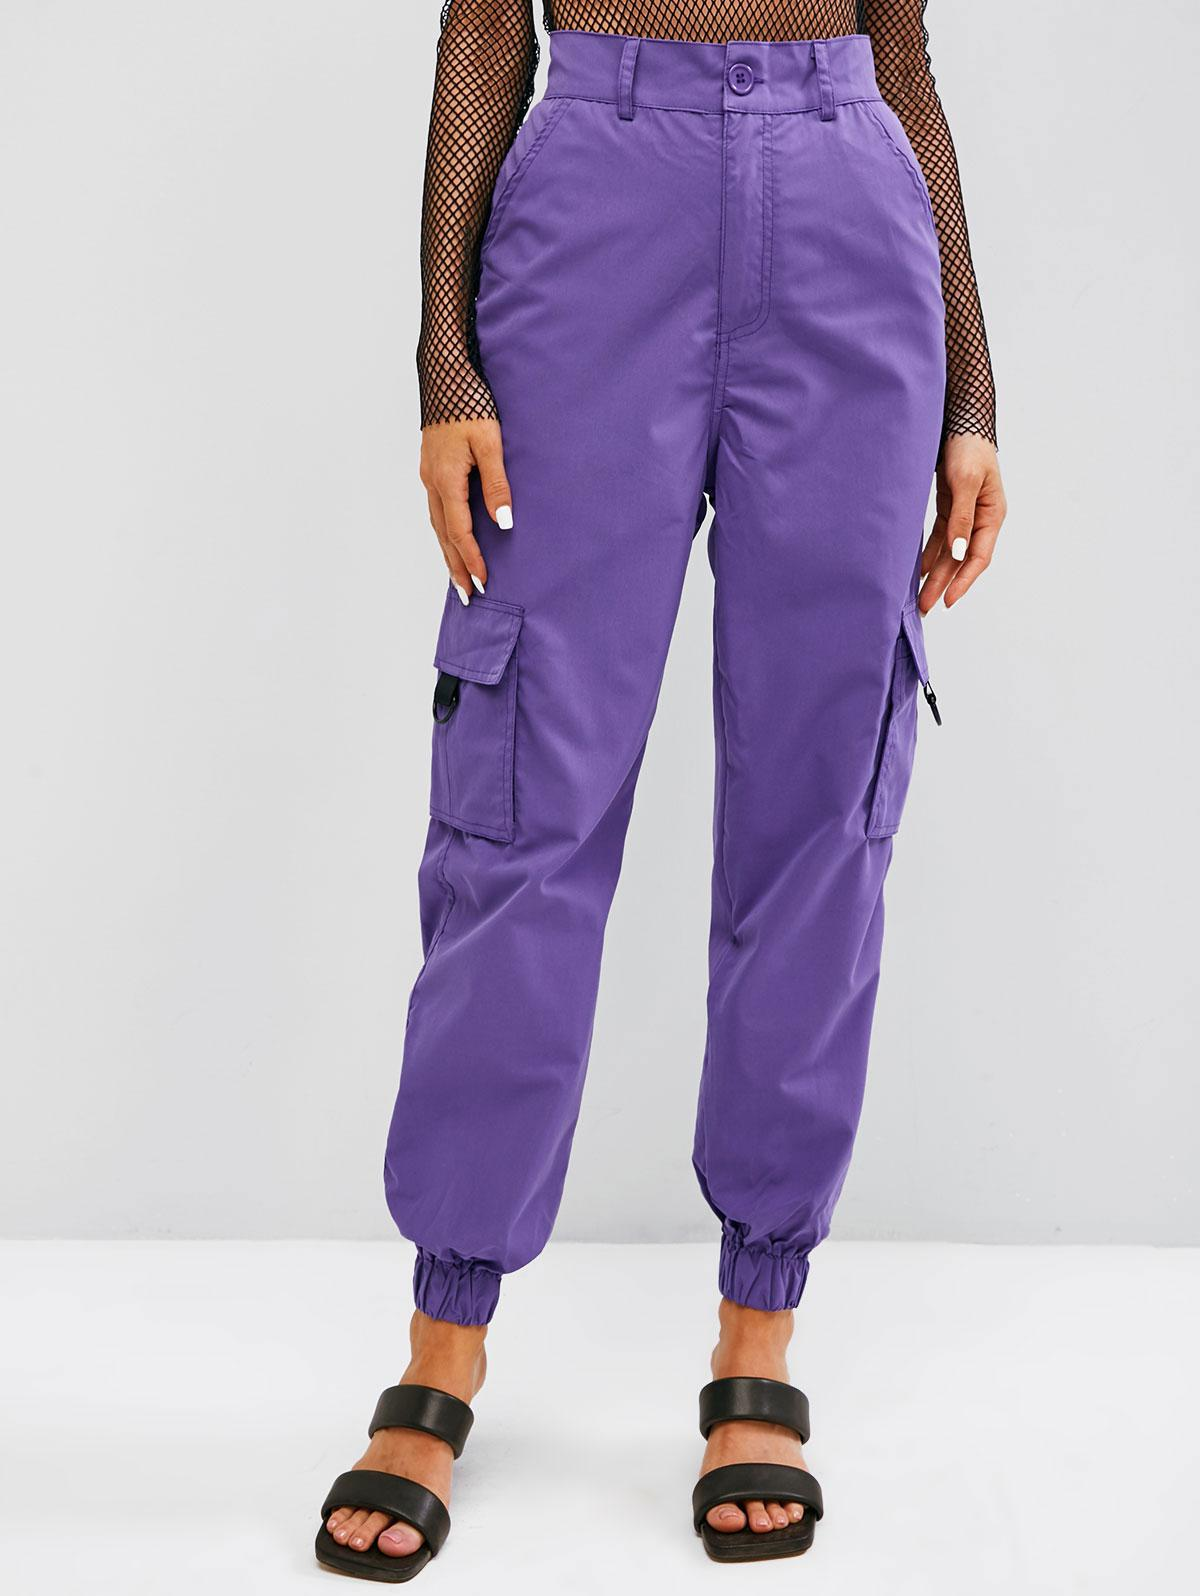 Flap Pocket Beam Feet O-ring Cargo Pants